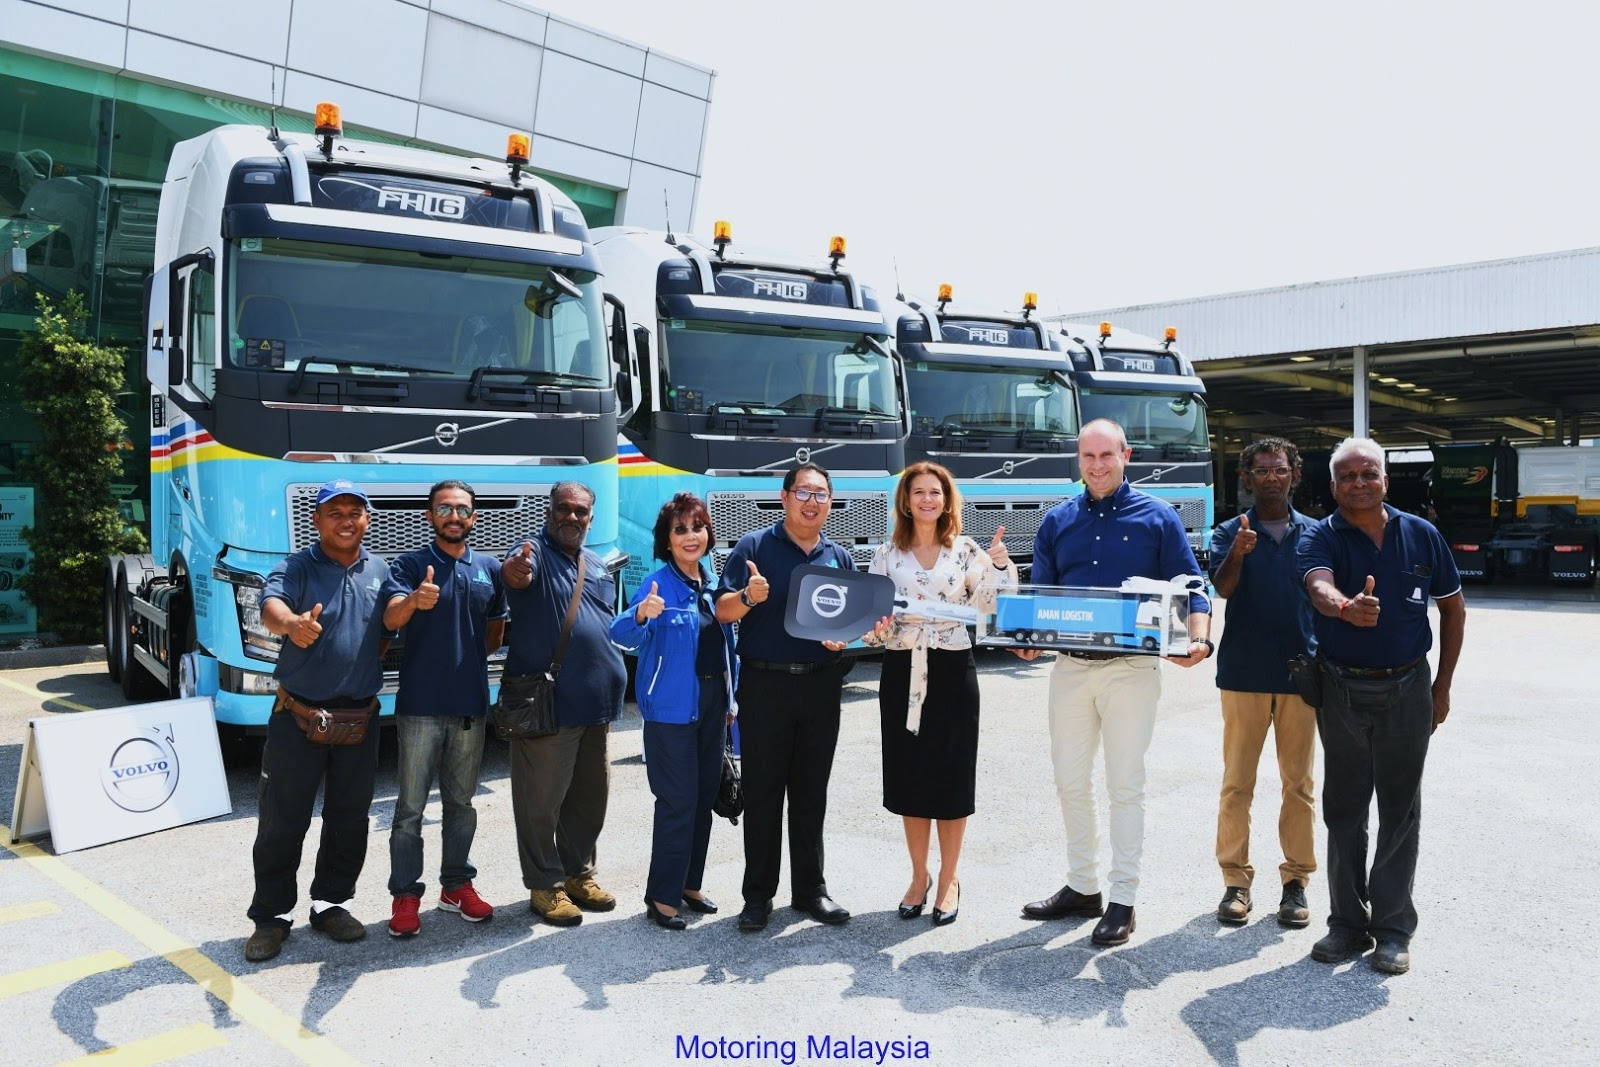 Motoring-Malaysia: Aman Logistik Sdn Bhd Procures Four Volvo FH16